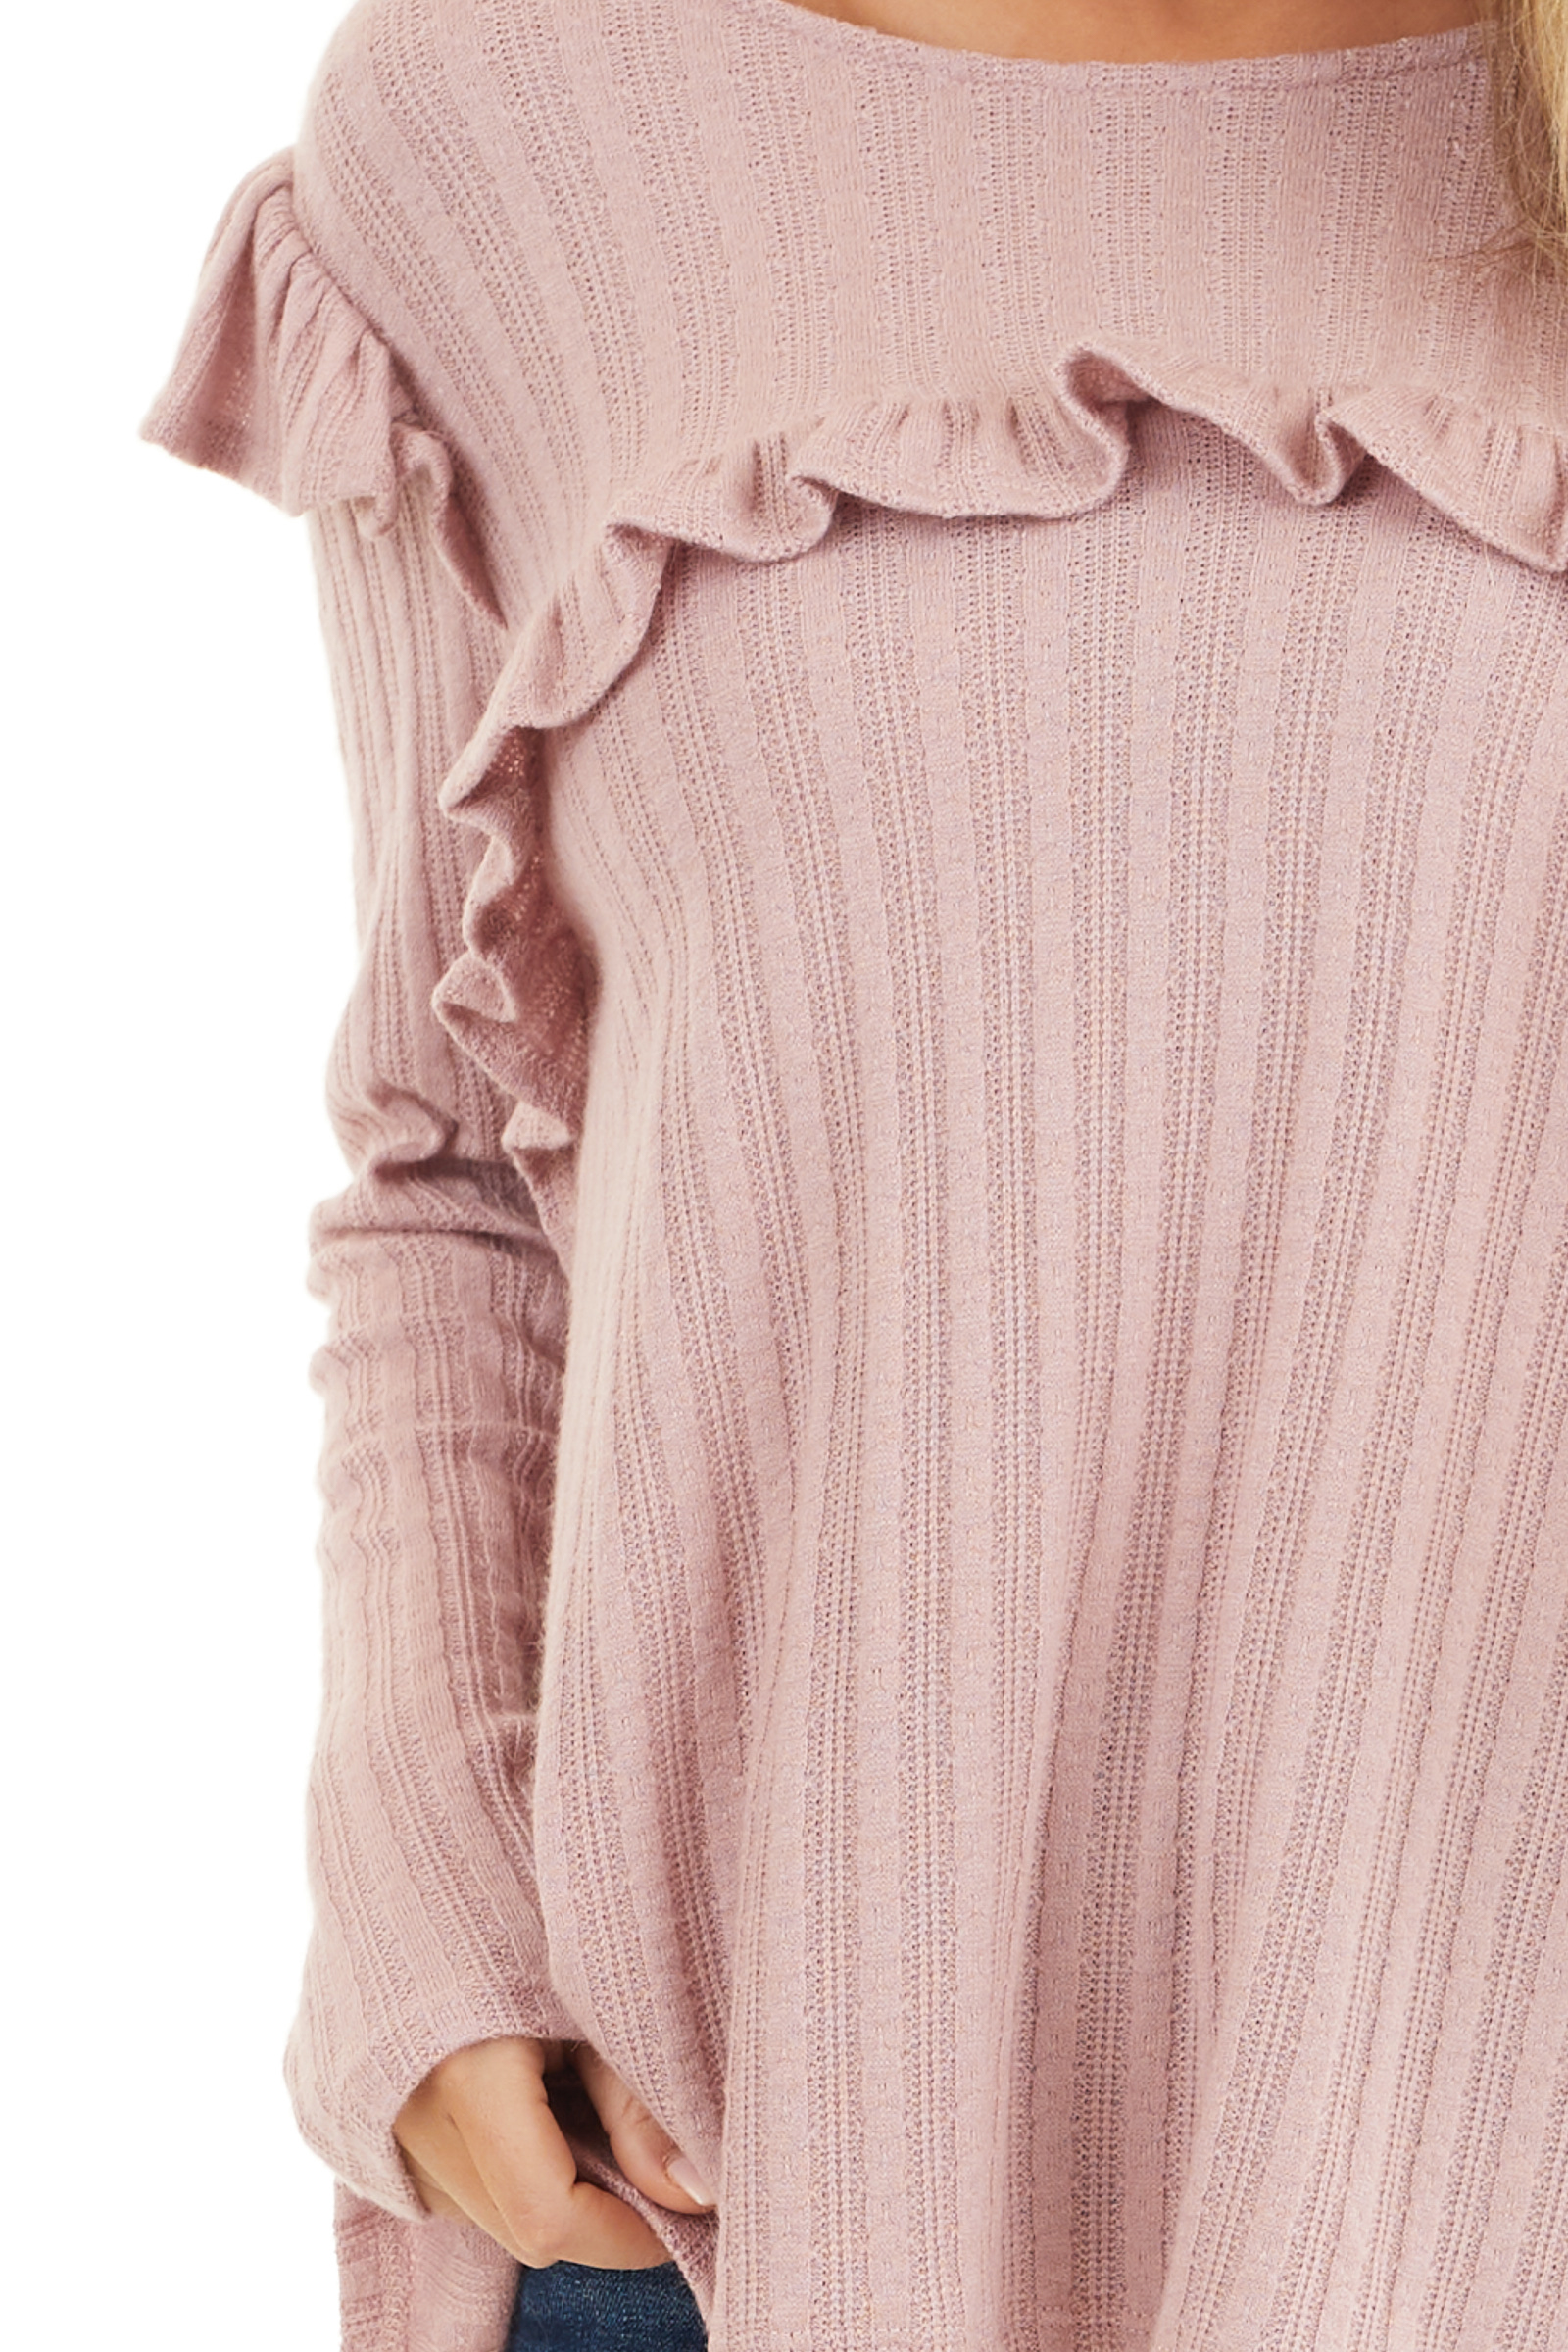 Dusty Pink Textured Long Sleeve Top with Ruffle Details detail